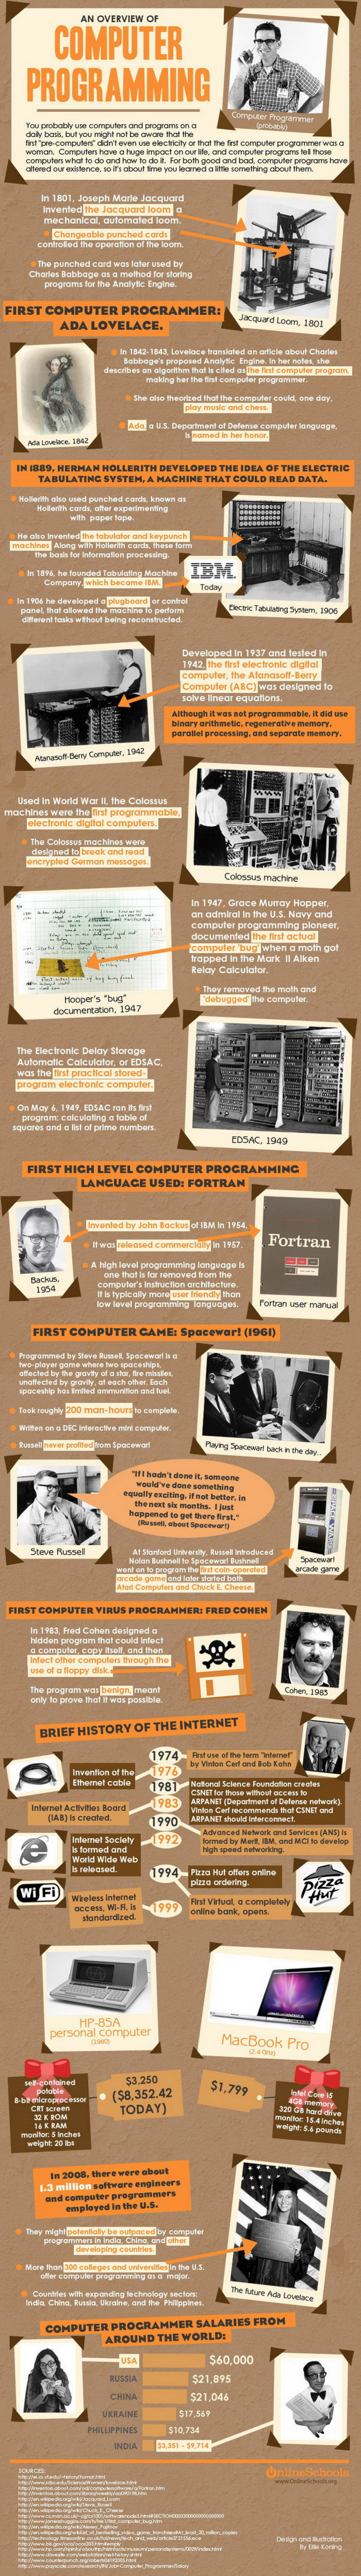 An Overview of Computer Programing  Infographic